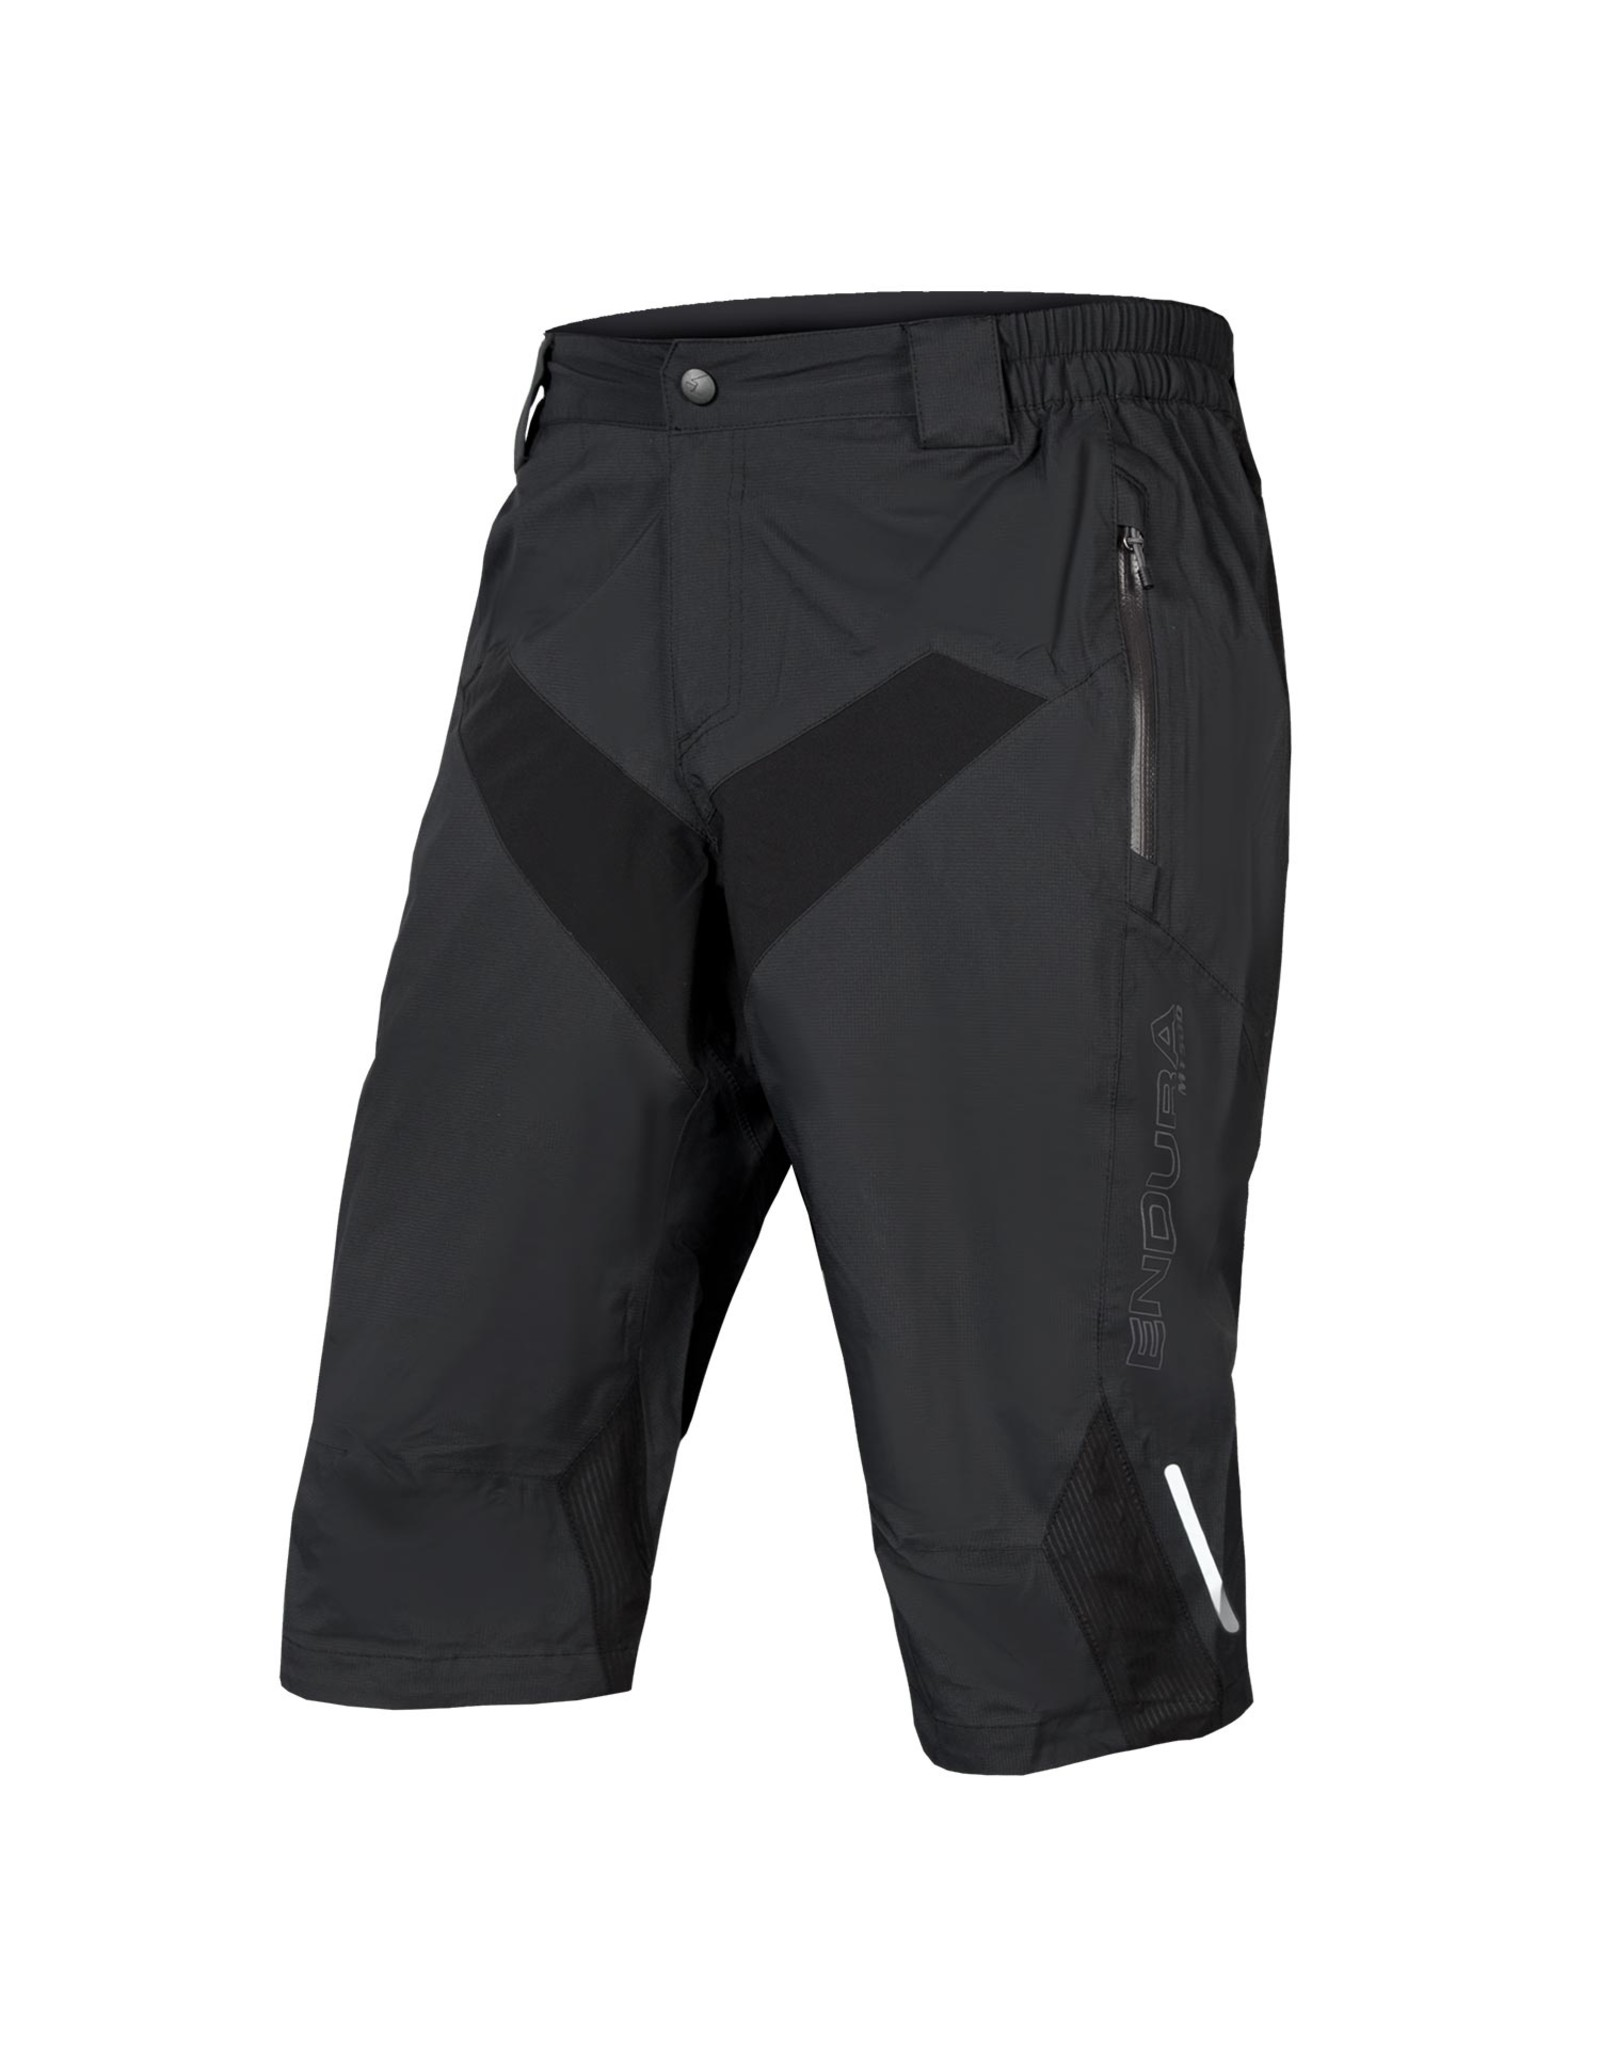 Endura MT500 Waterproof Short: Black - XL